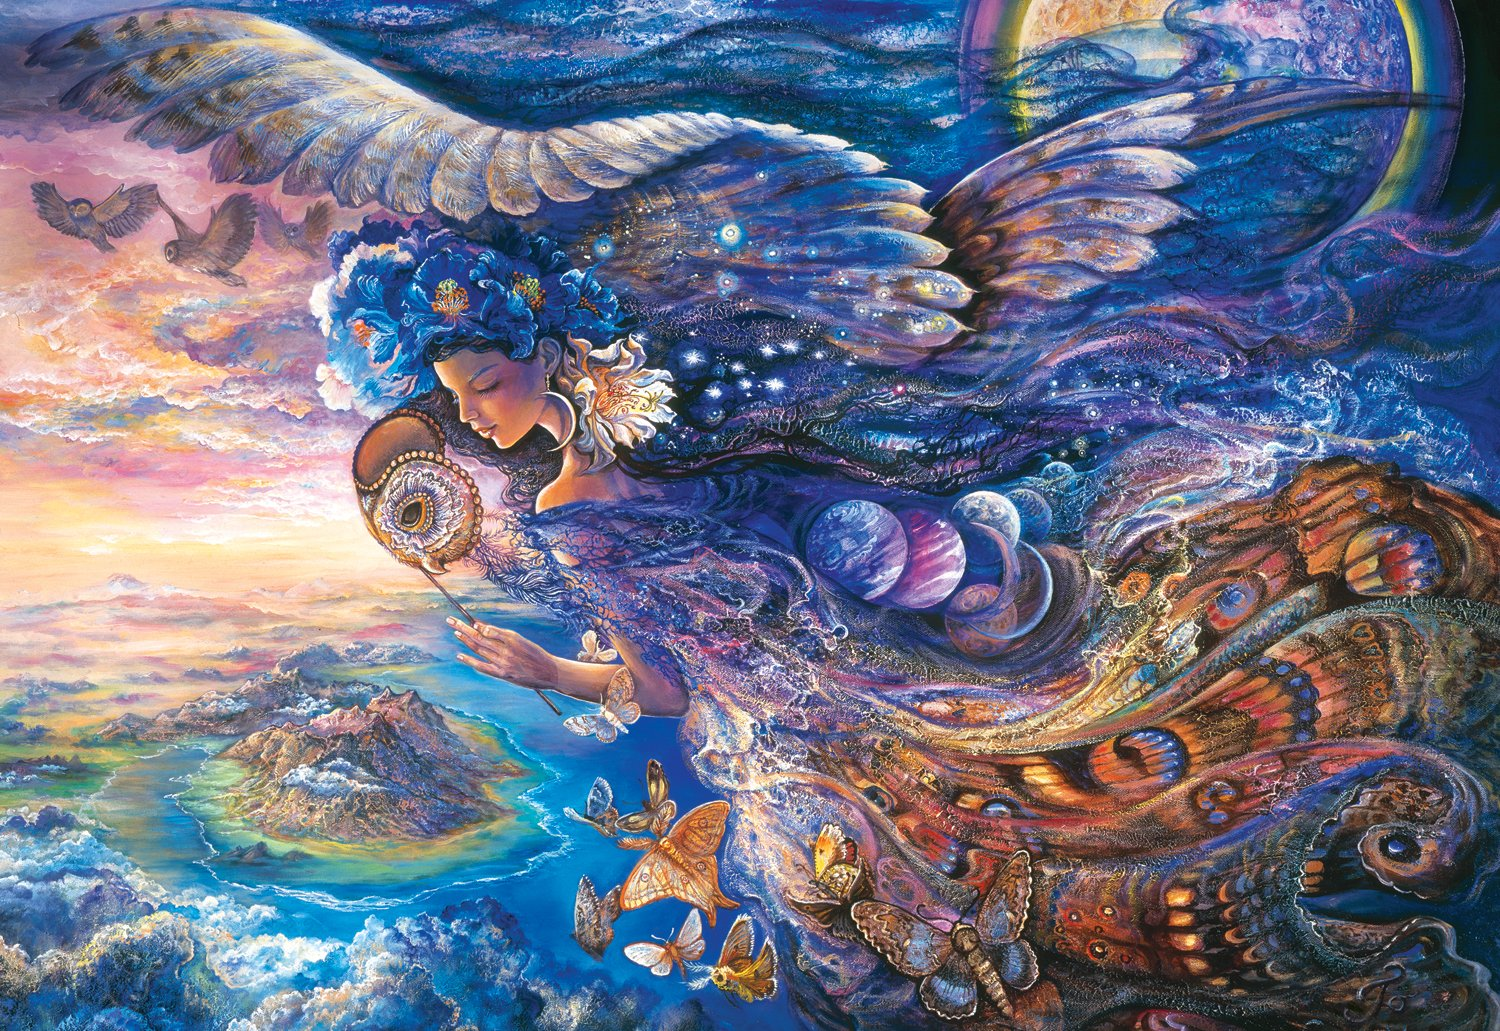 Josephine wall jigsaw puzzles jigsaw puzzles for adults for Wall artwork paintings